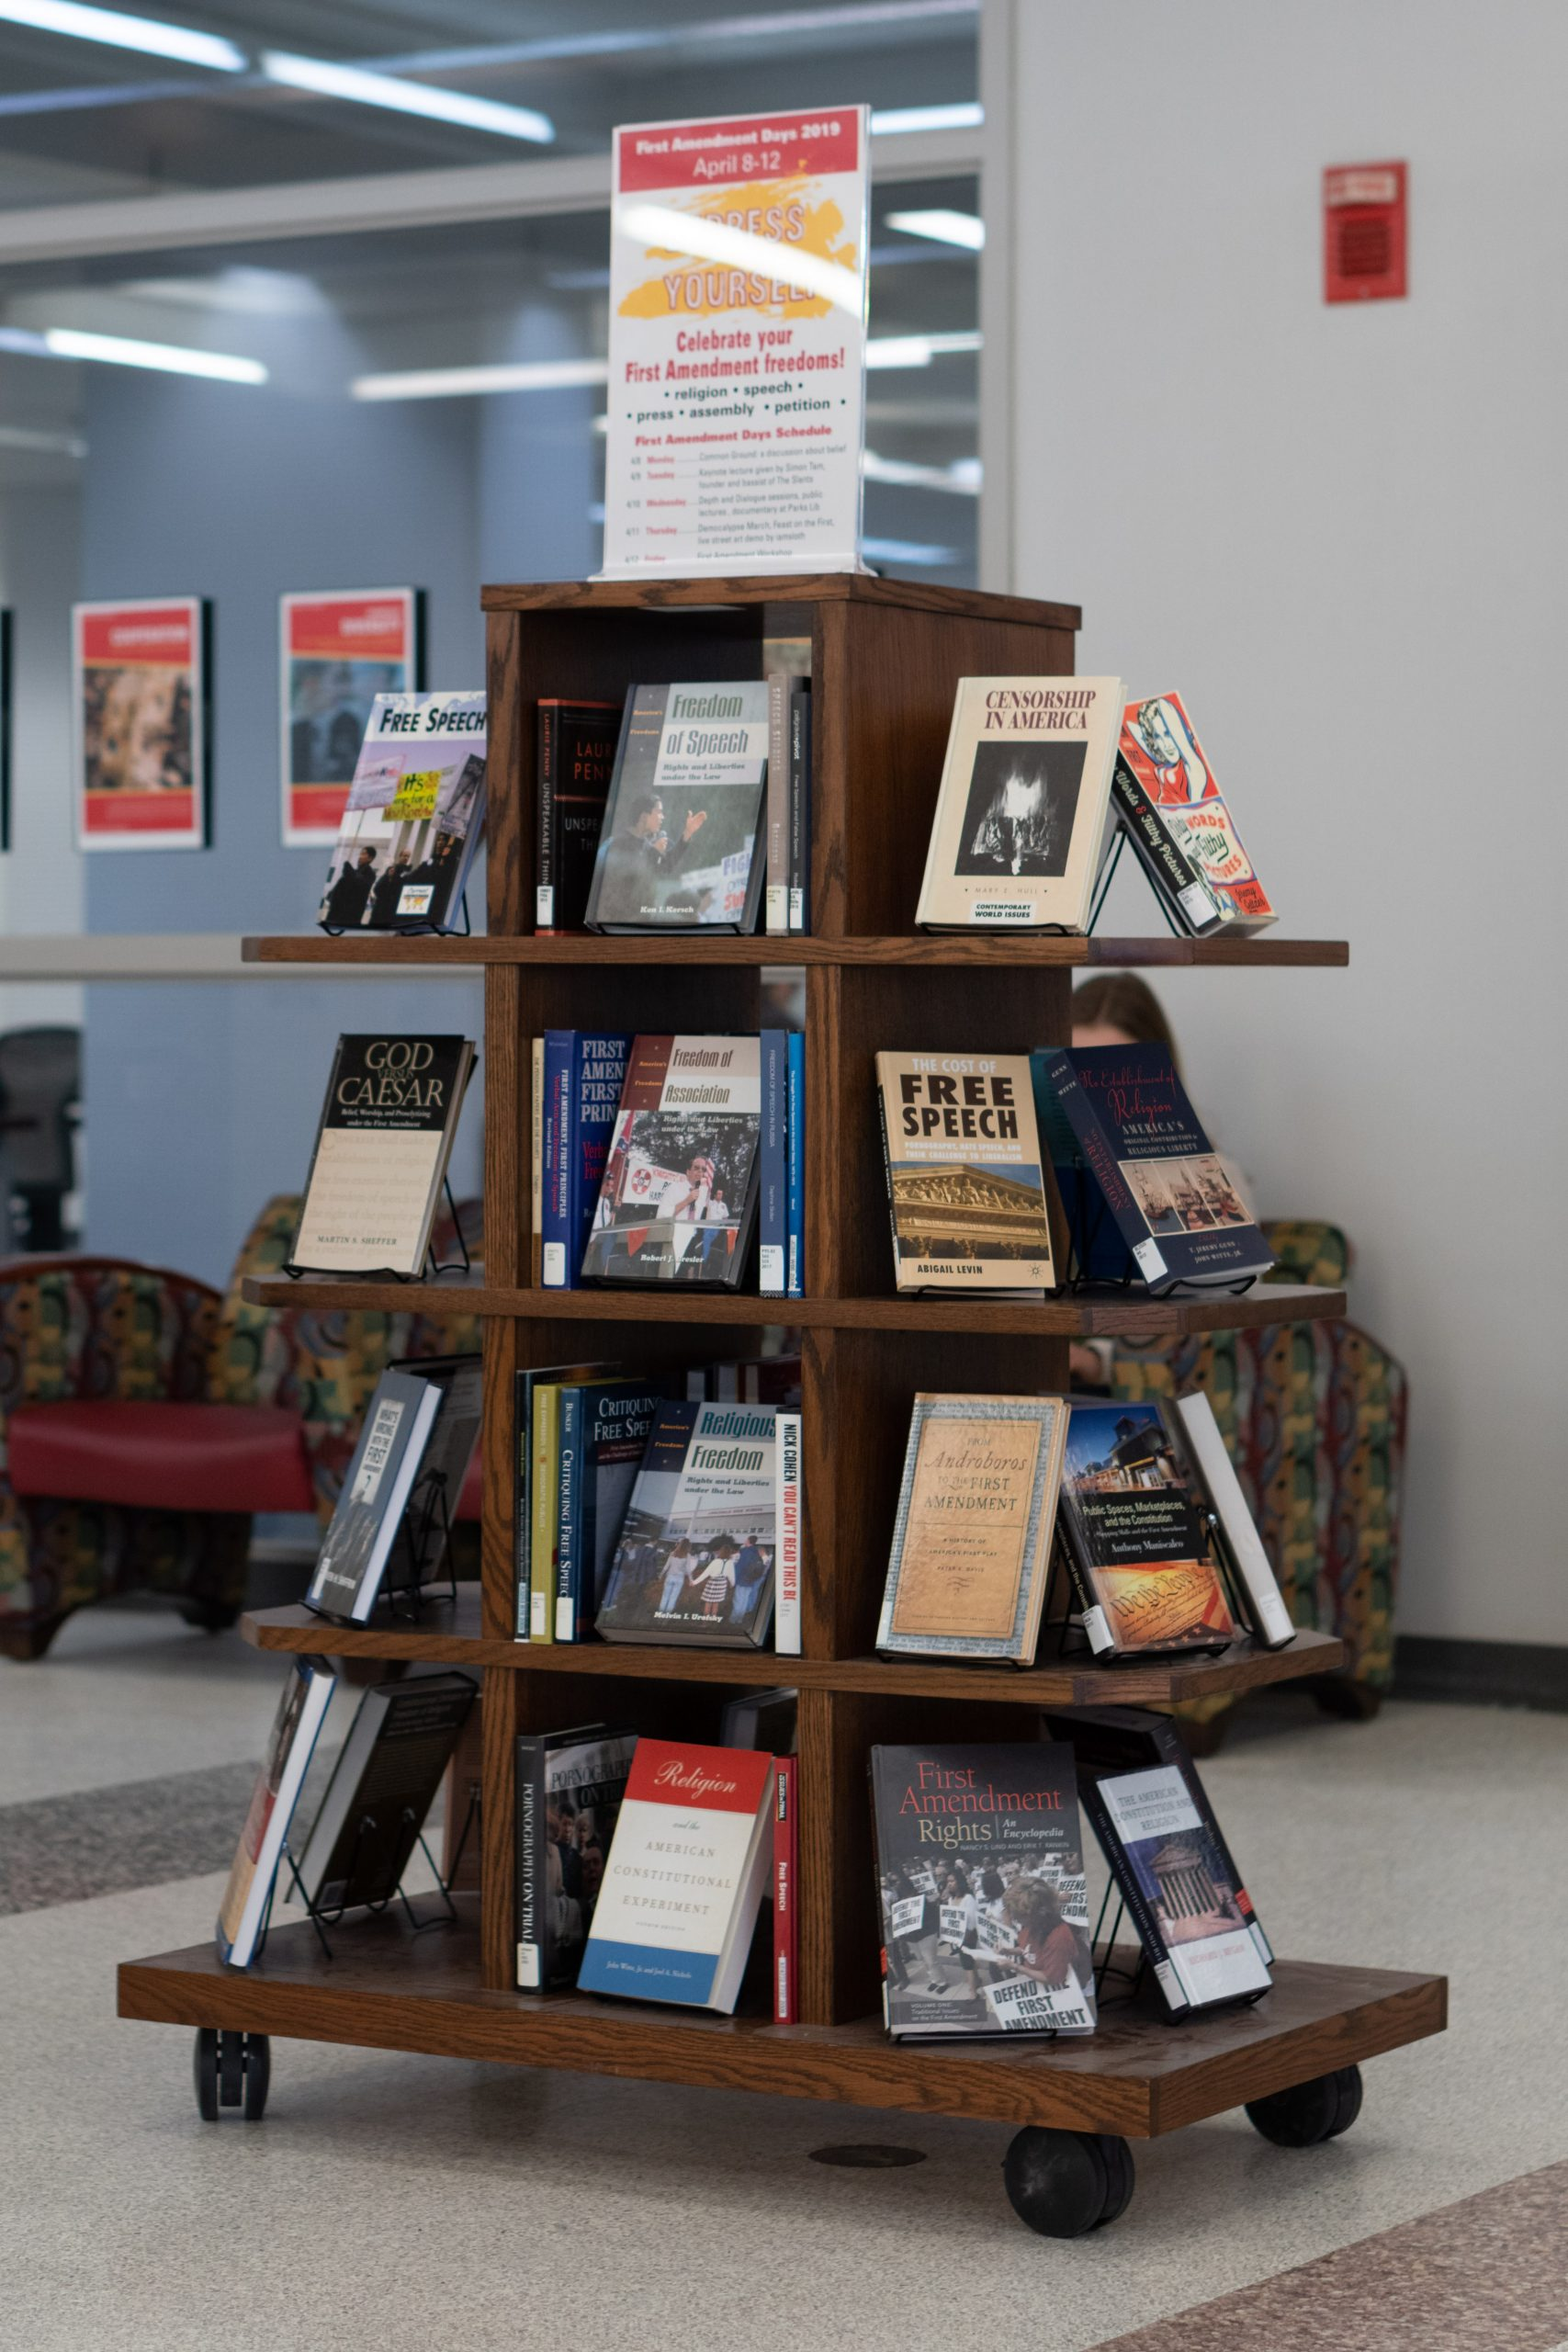 a display containing books about the First Amendment